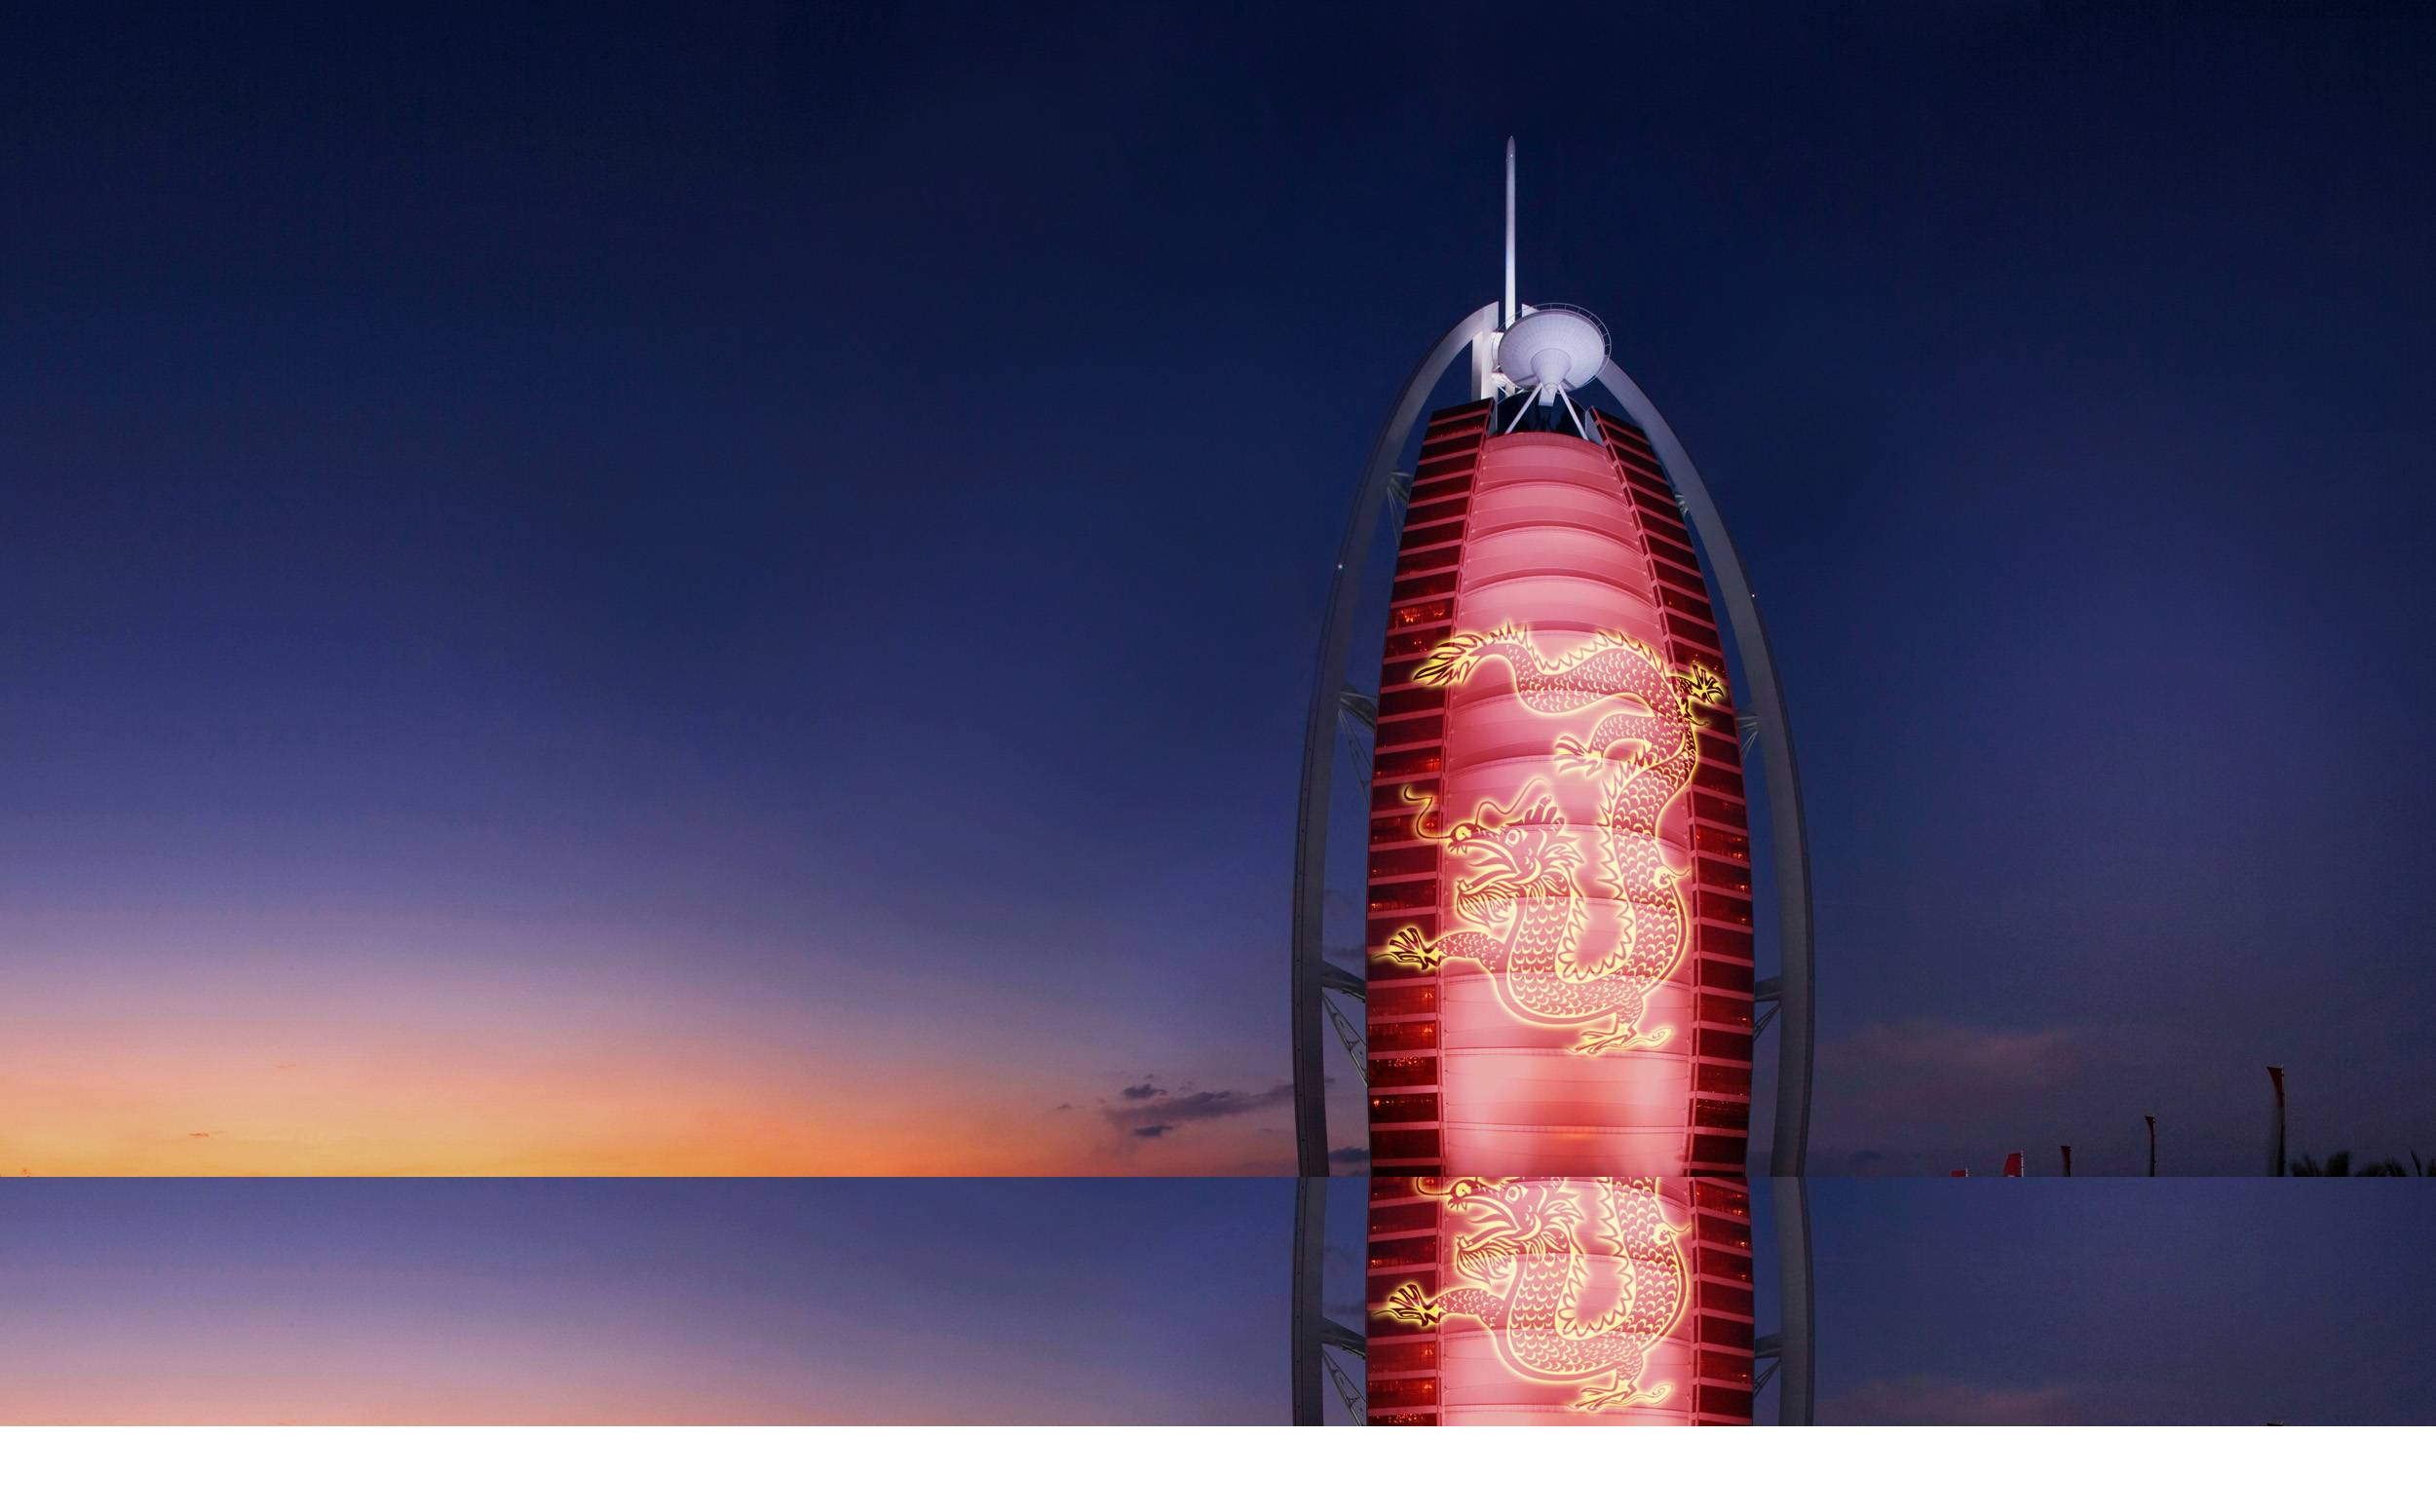 The Burj Al Arab Celebrates Chinese New Year